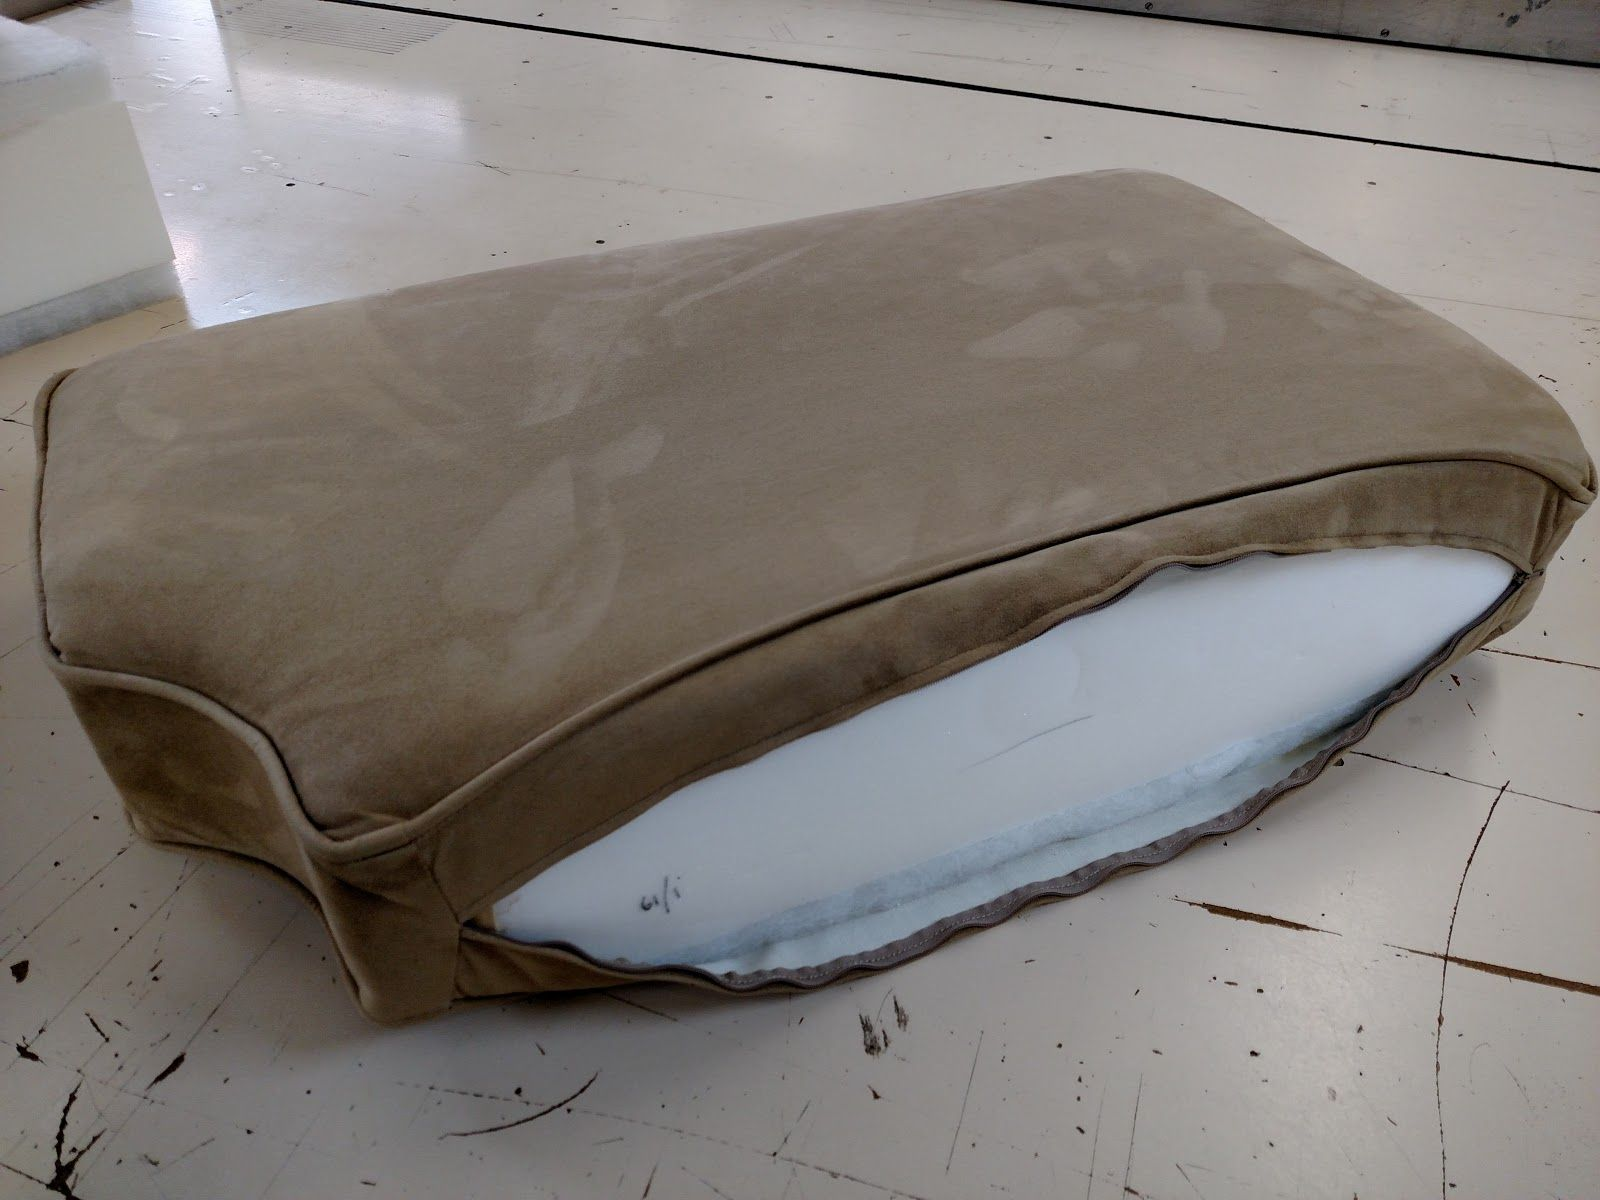 Back Cushion Foam Replacement5